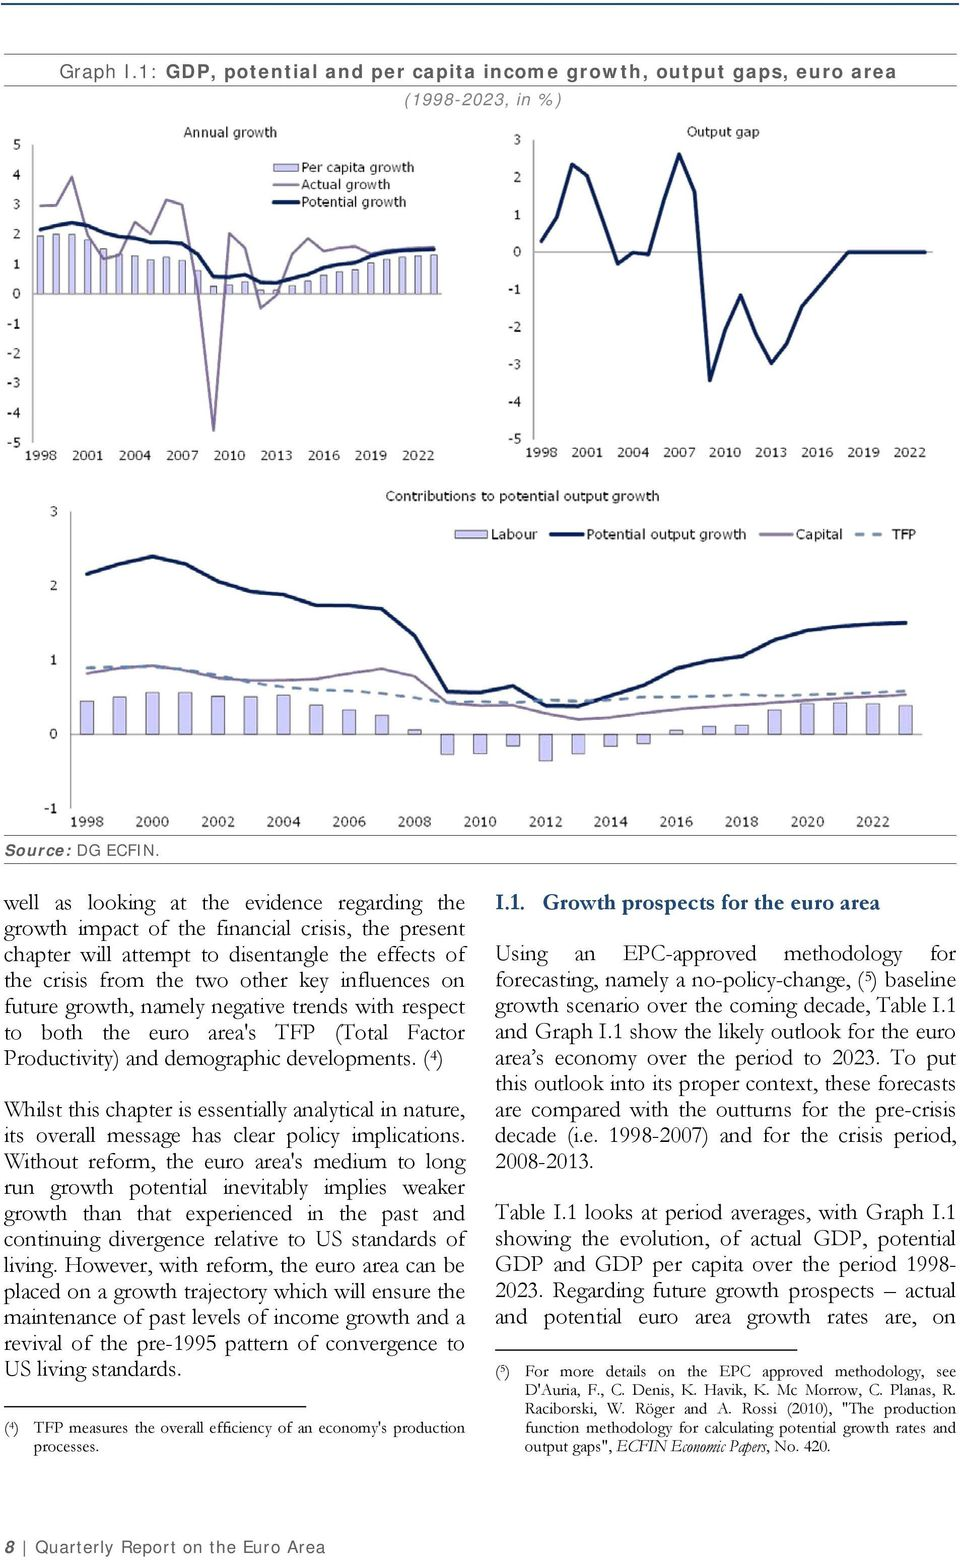 attempt to disentangle the effects of the crisis from the two other key influences on future growth, namely negative trends with respect to both the euro area's TFP (Total Factor Productivity) and